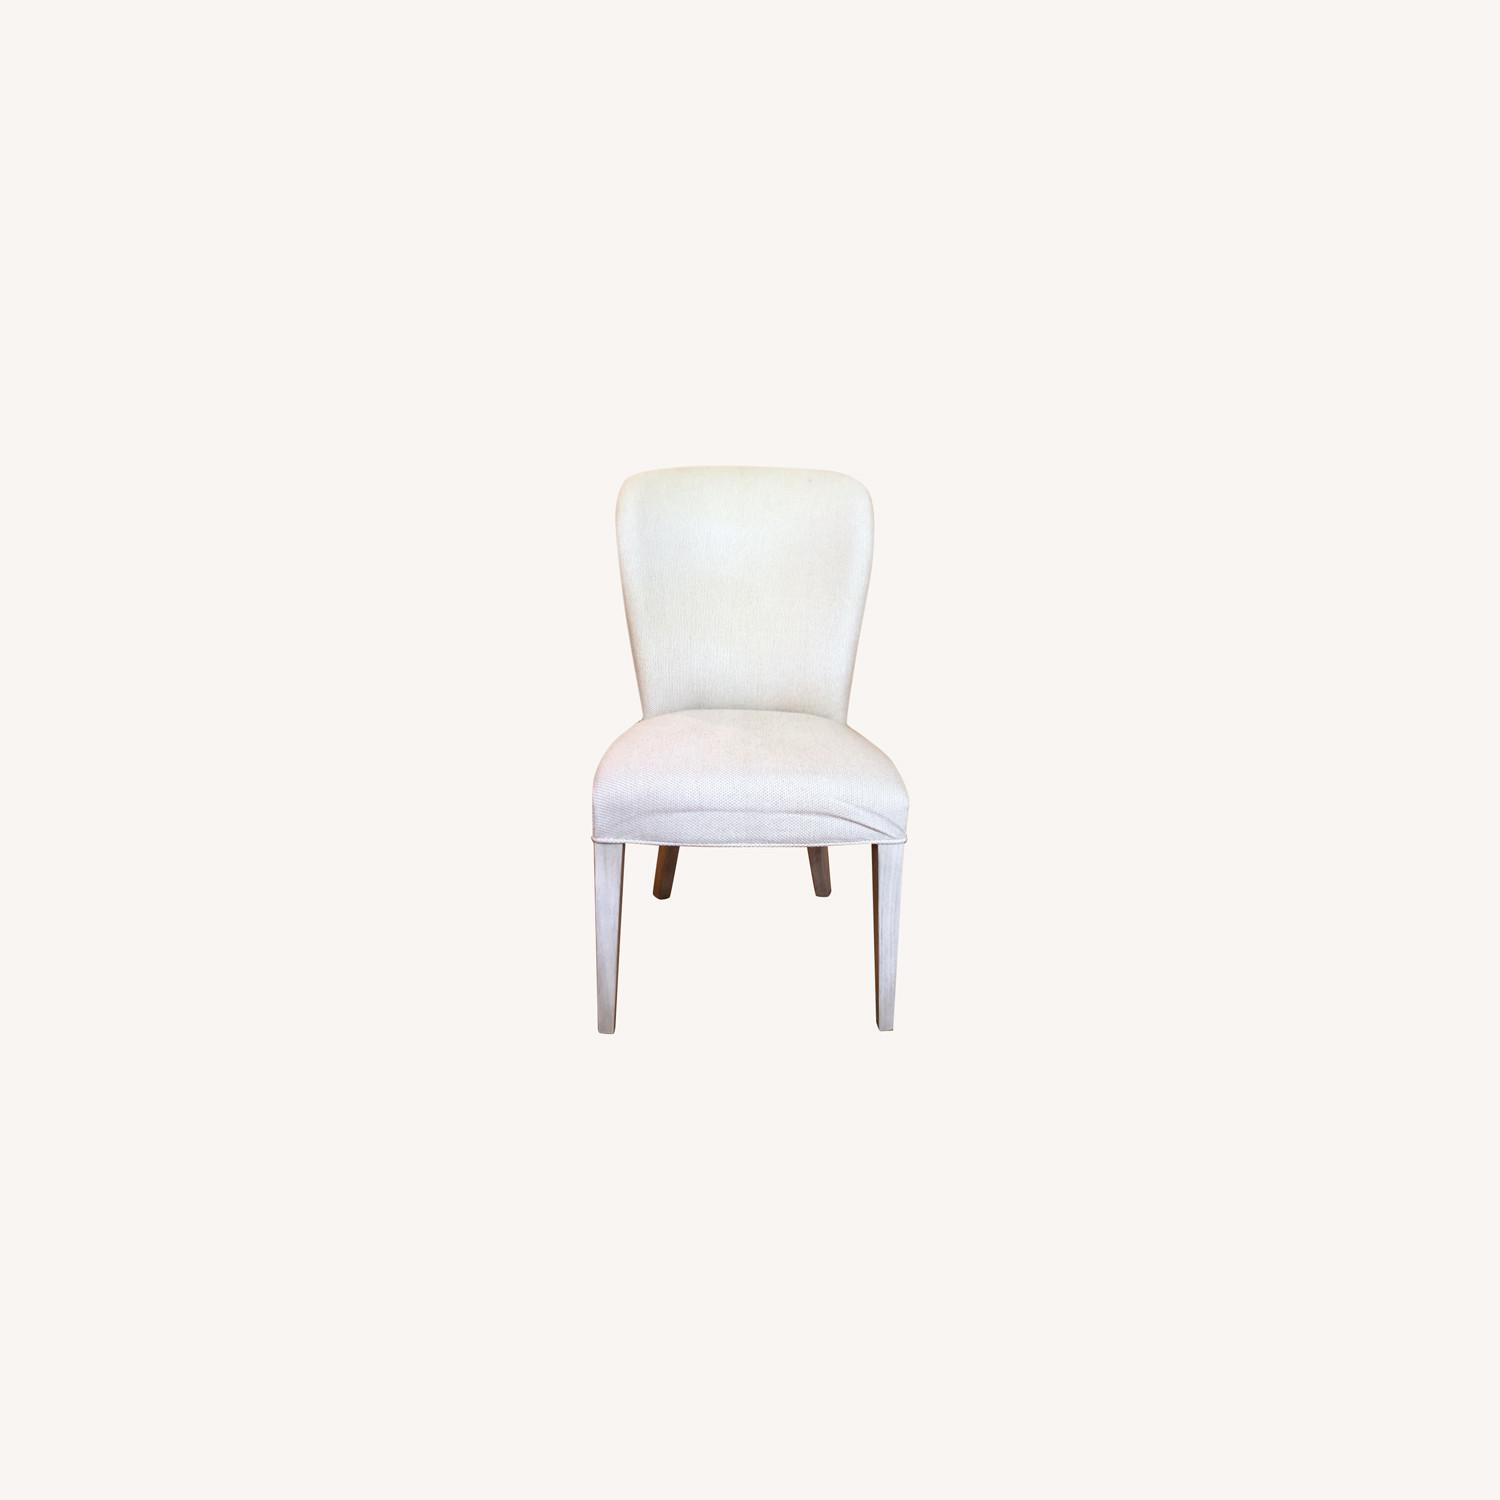 Oyster Bay Baxter Upholstered Side Chair - image-0